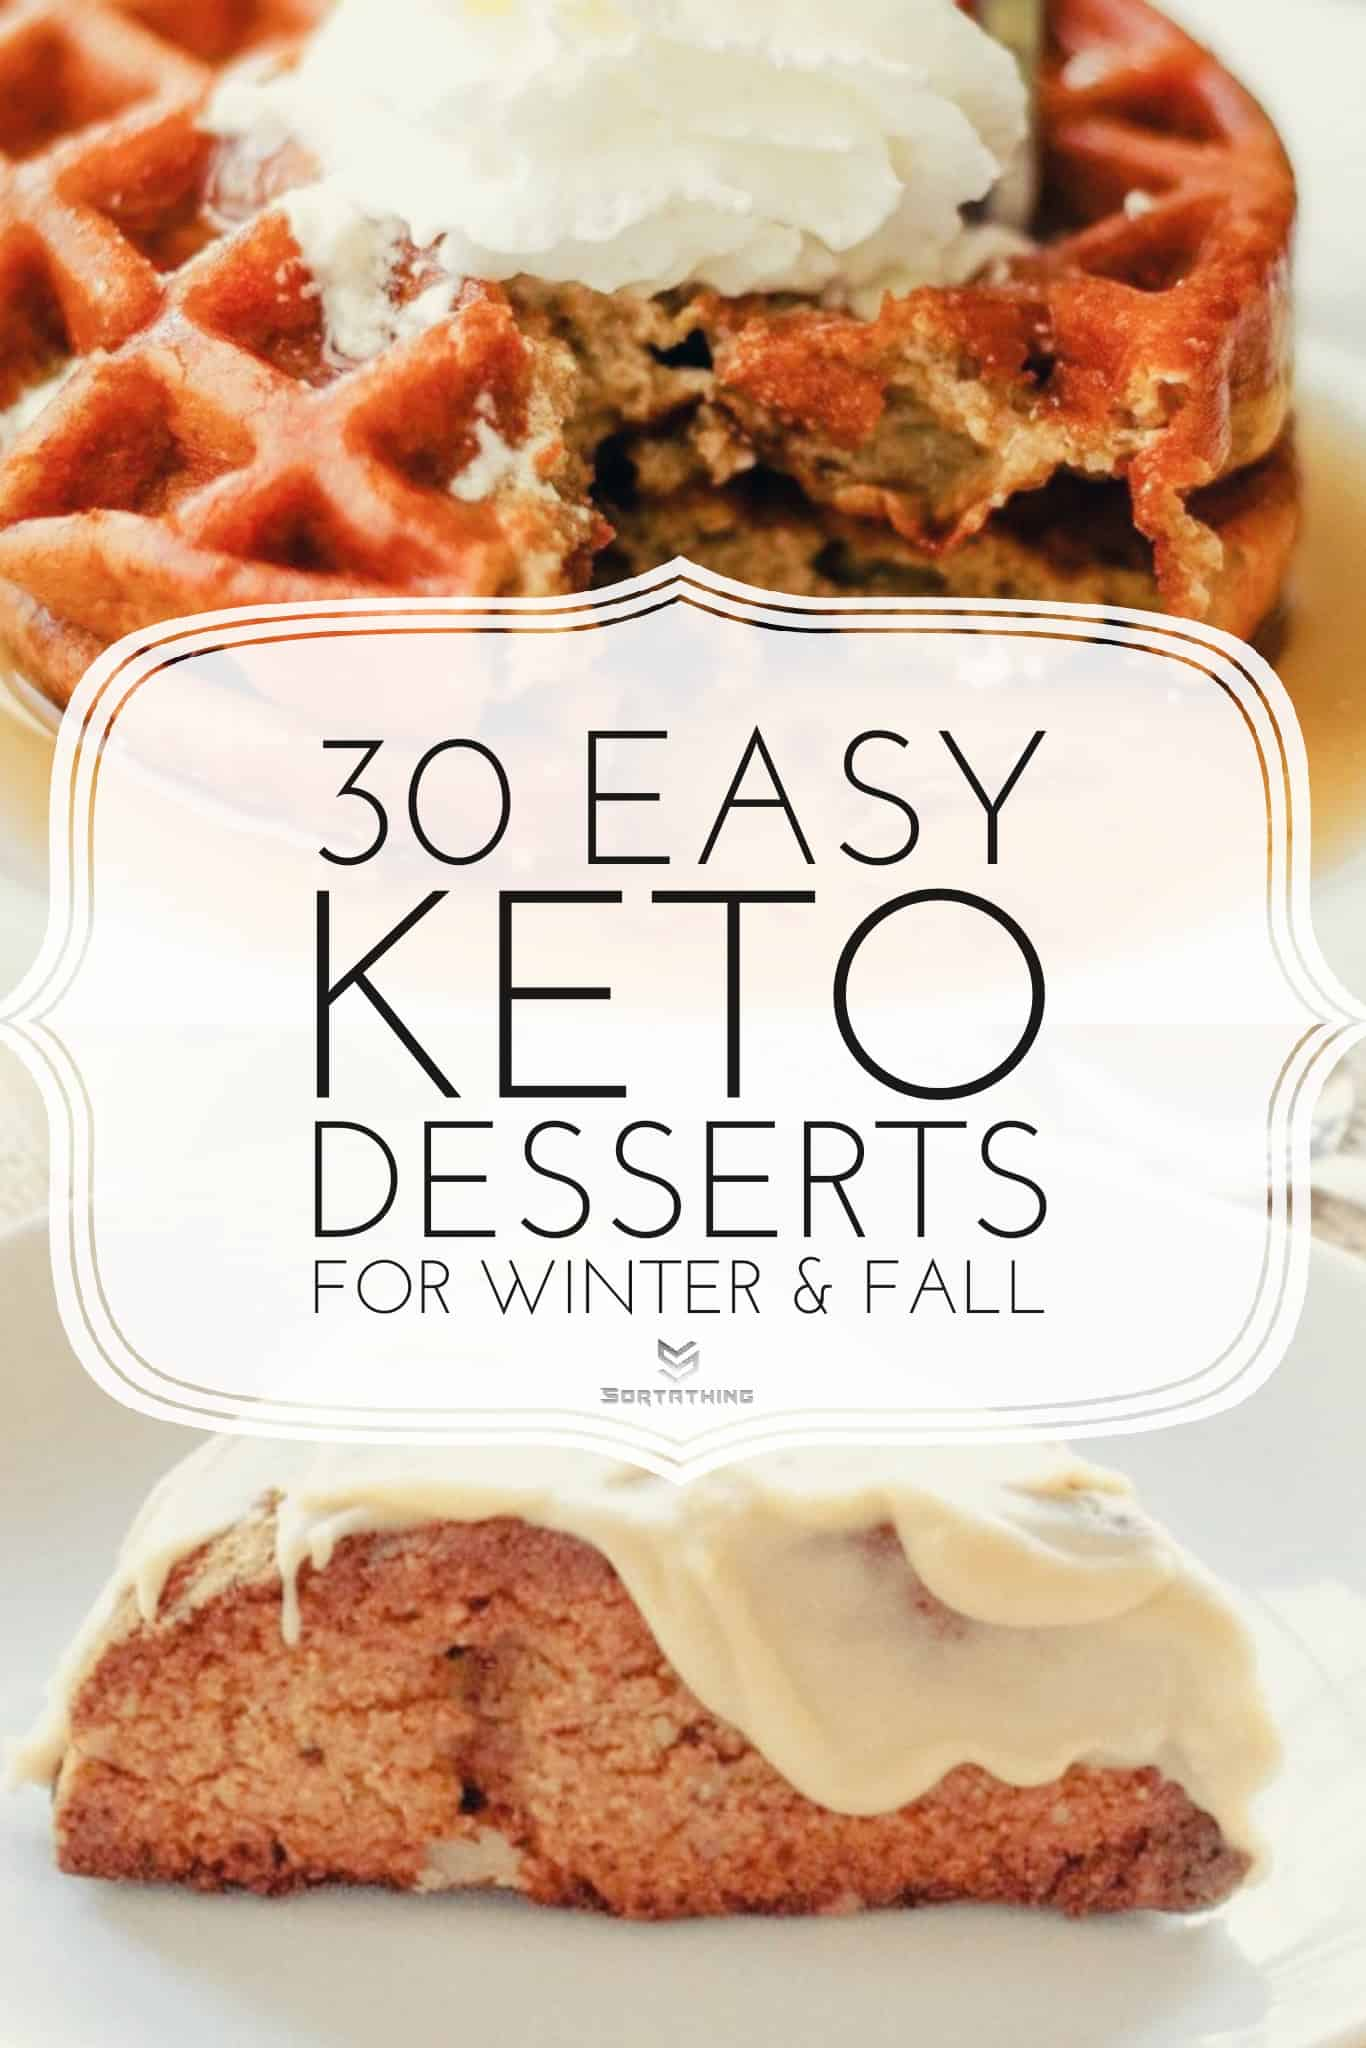 Maple Pumpkin Keto Waffle Recipe (Chaffle)and Maple Pecan Keto Scone